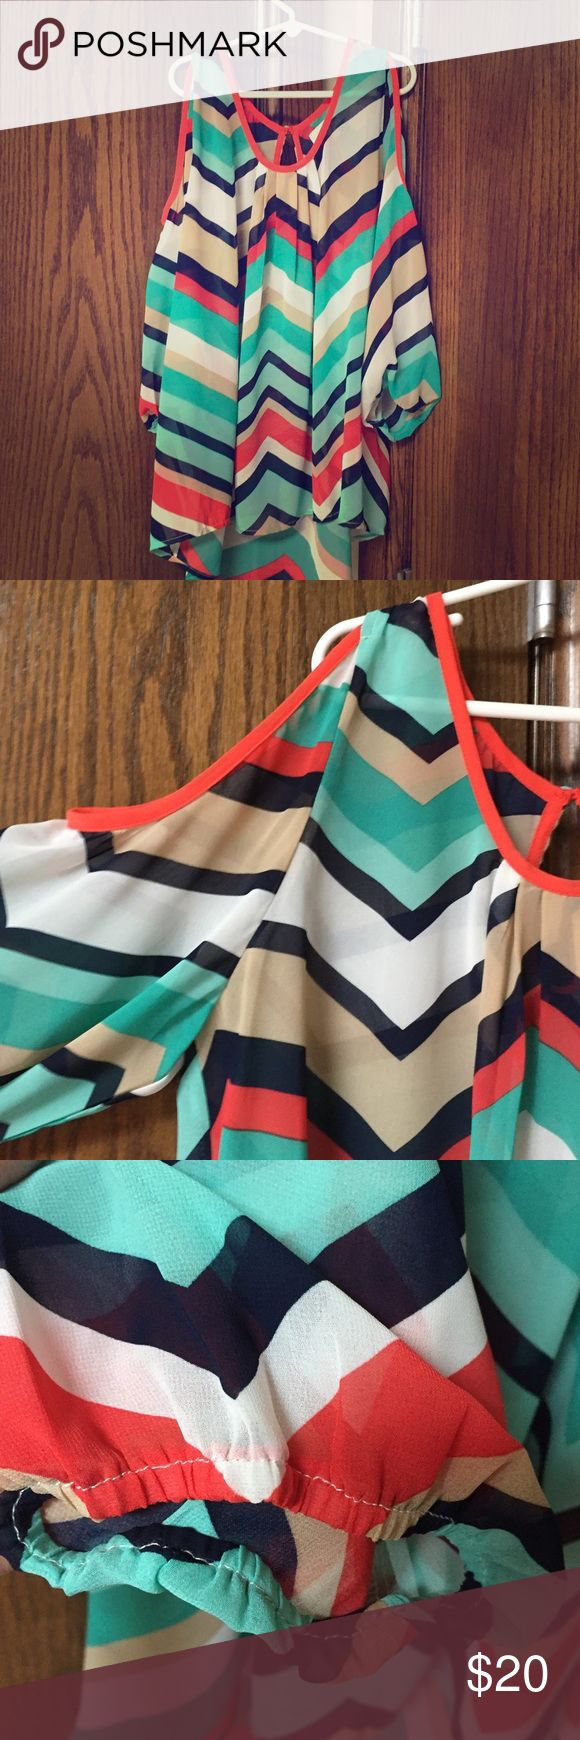 Chevron Blouse Chevron blouse with cut out shoulders, I only wore this a few times so condition is great, there are no obvious signs of wear. Fits true to size. Tops Blouses